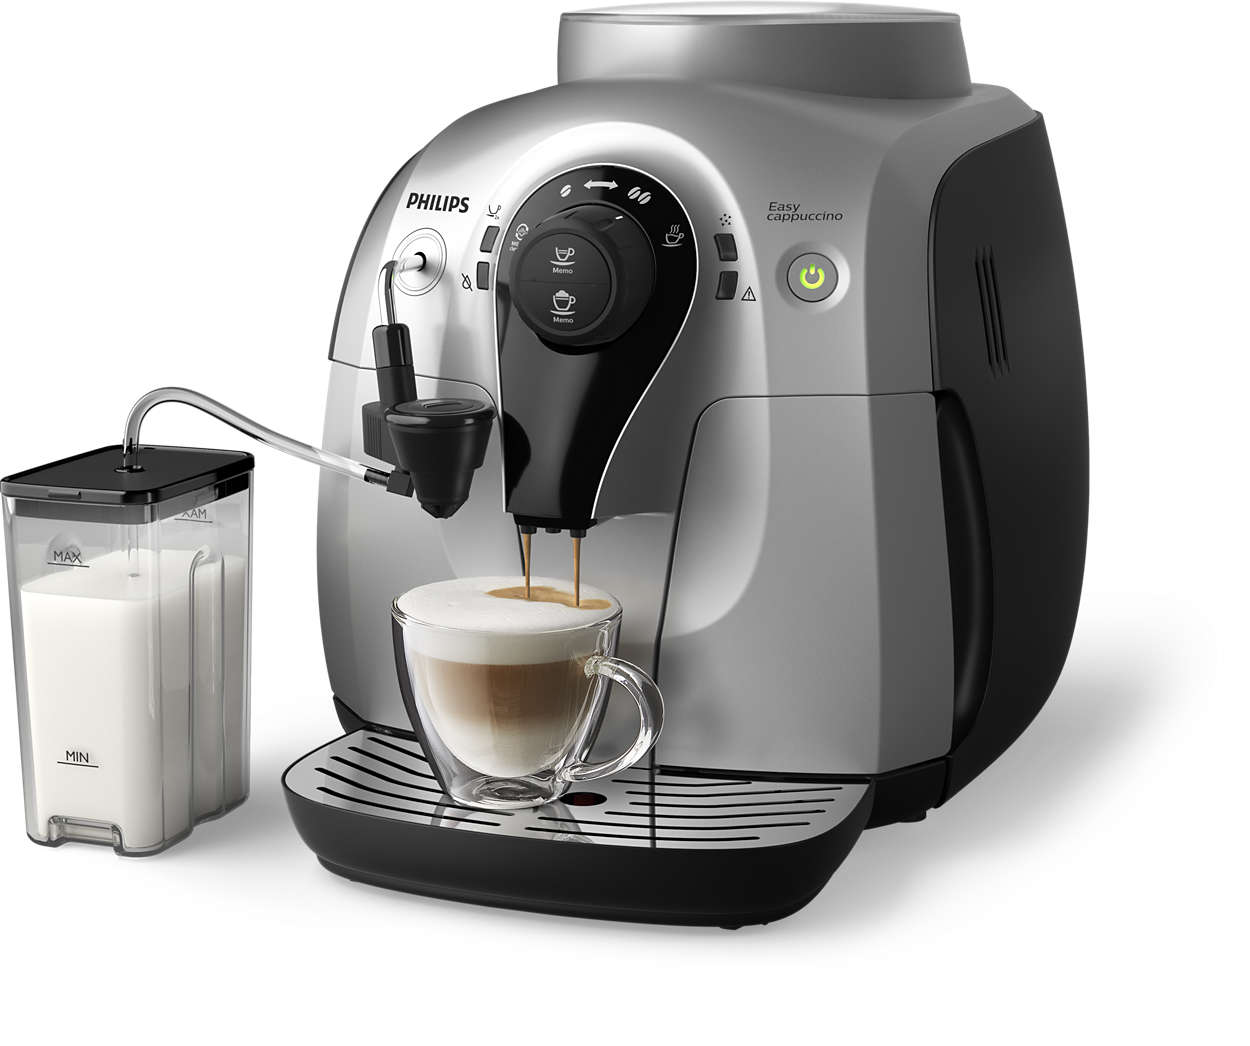 Petite machine, grand cappuccino